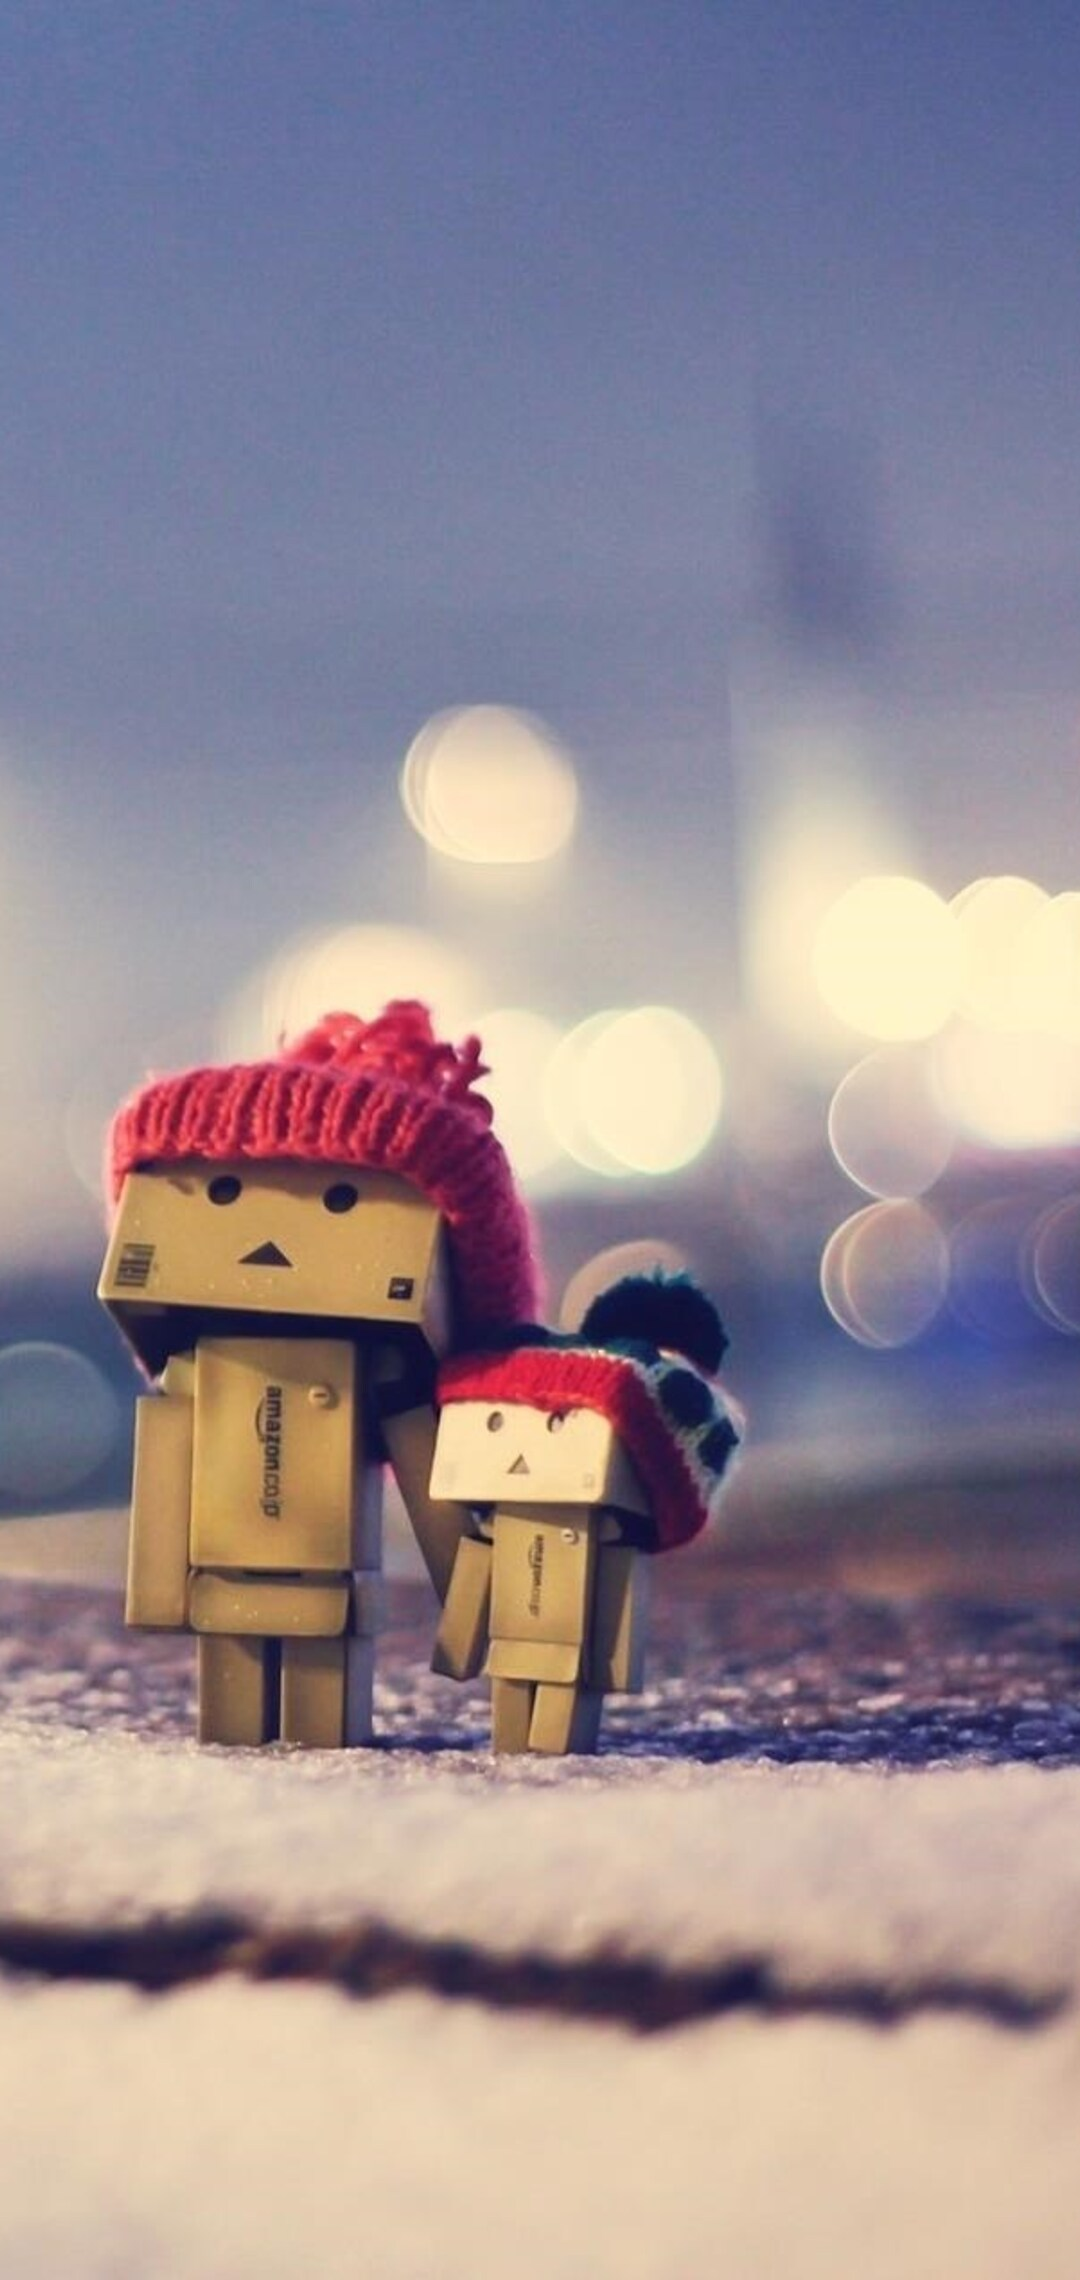 danbo-in-winter-dress.jpg